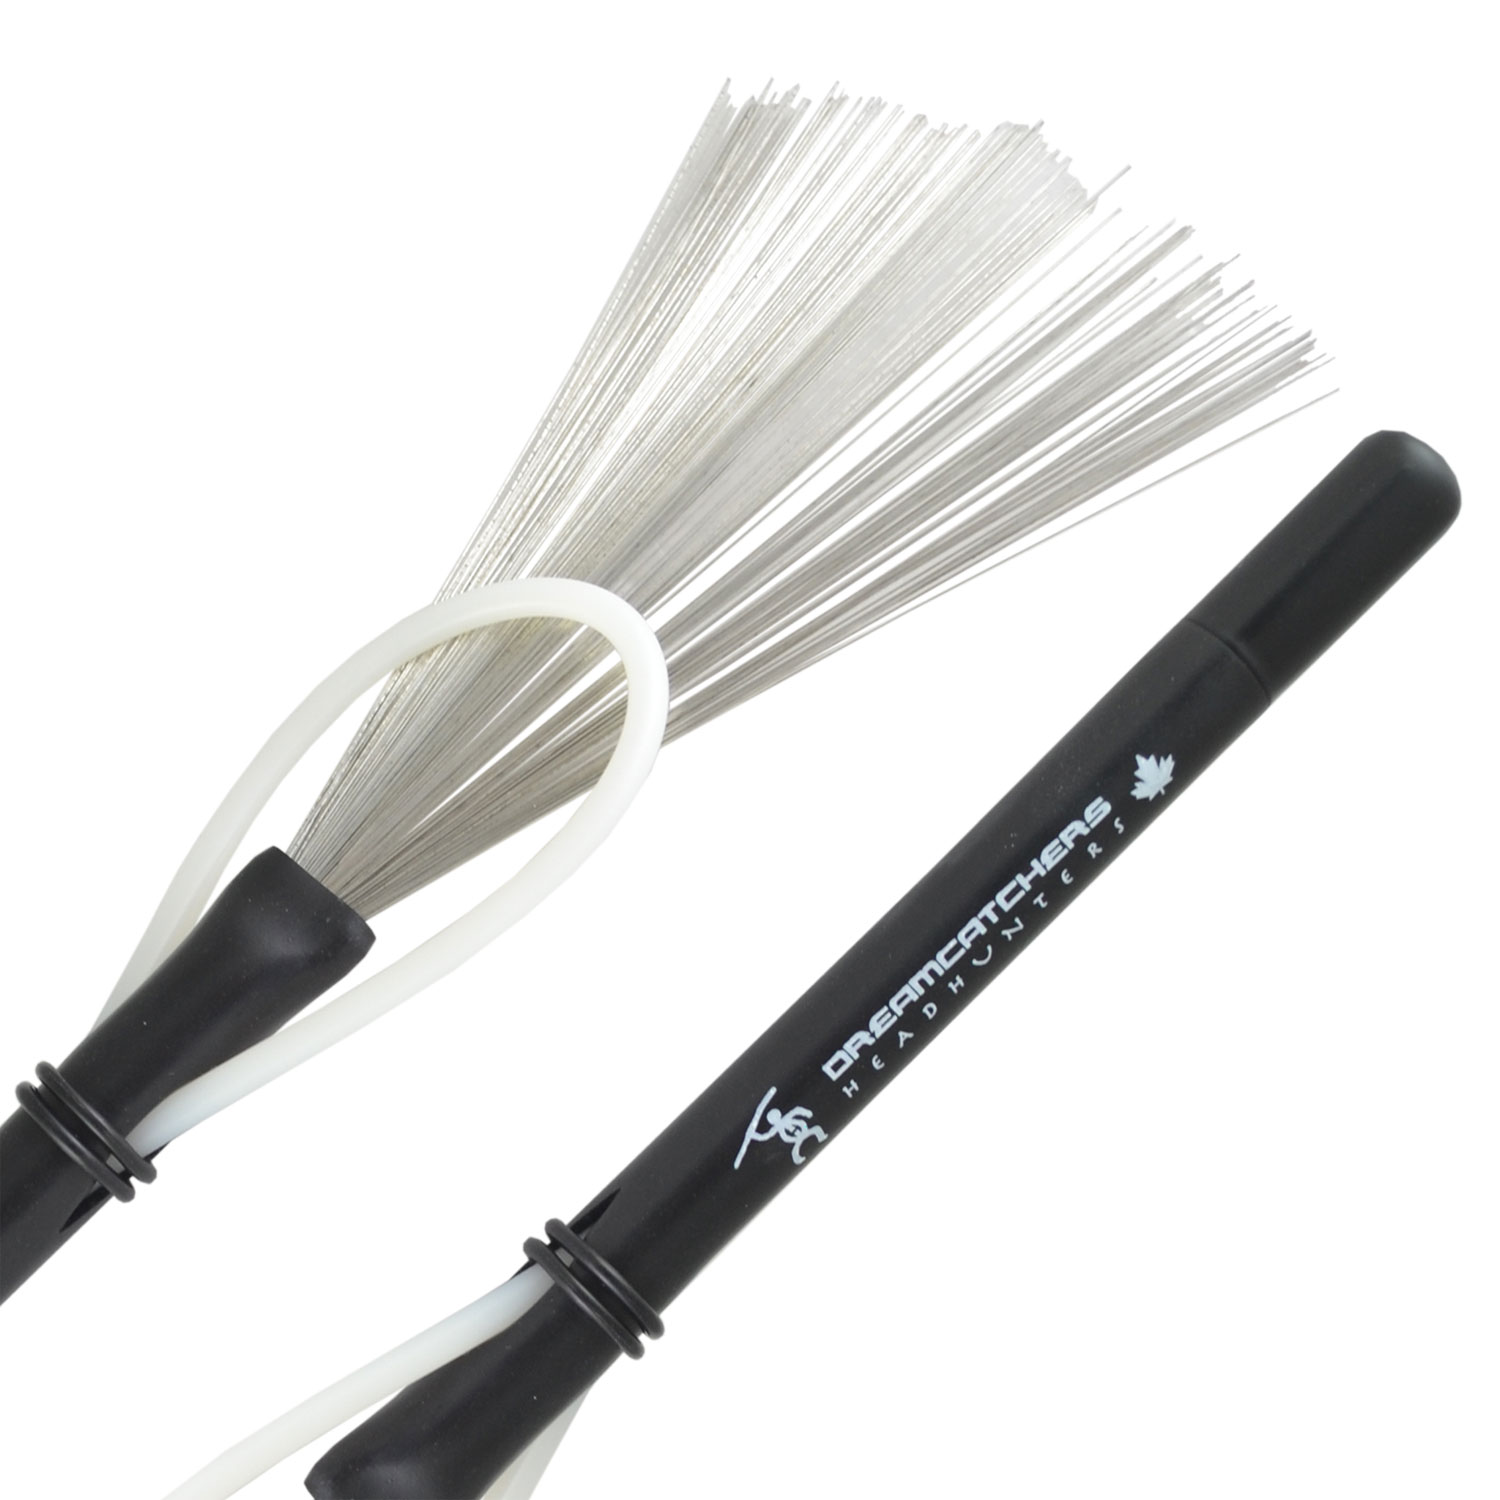 Headhunters Dreamcatchers Nylon Loop/Wire Hybrid Brushes